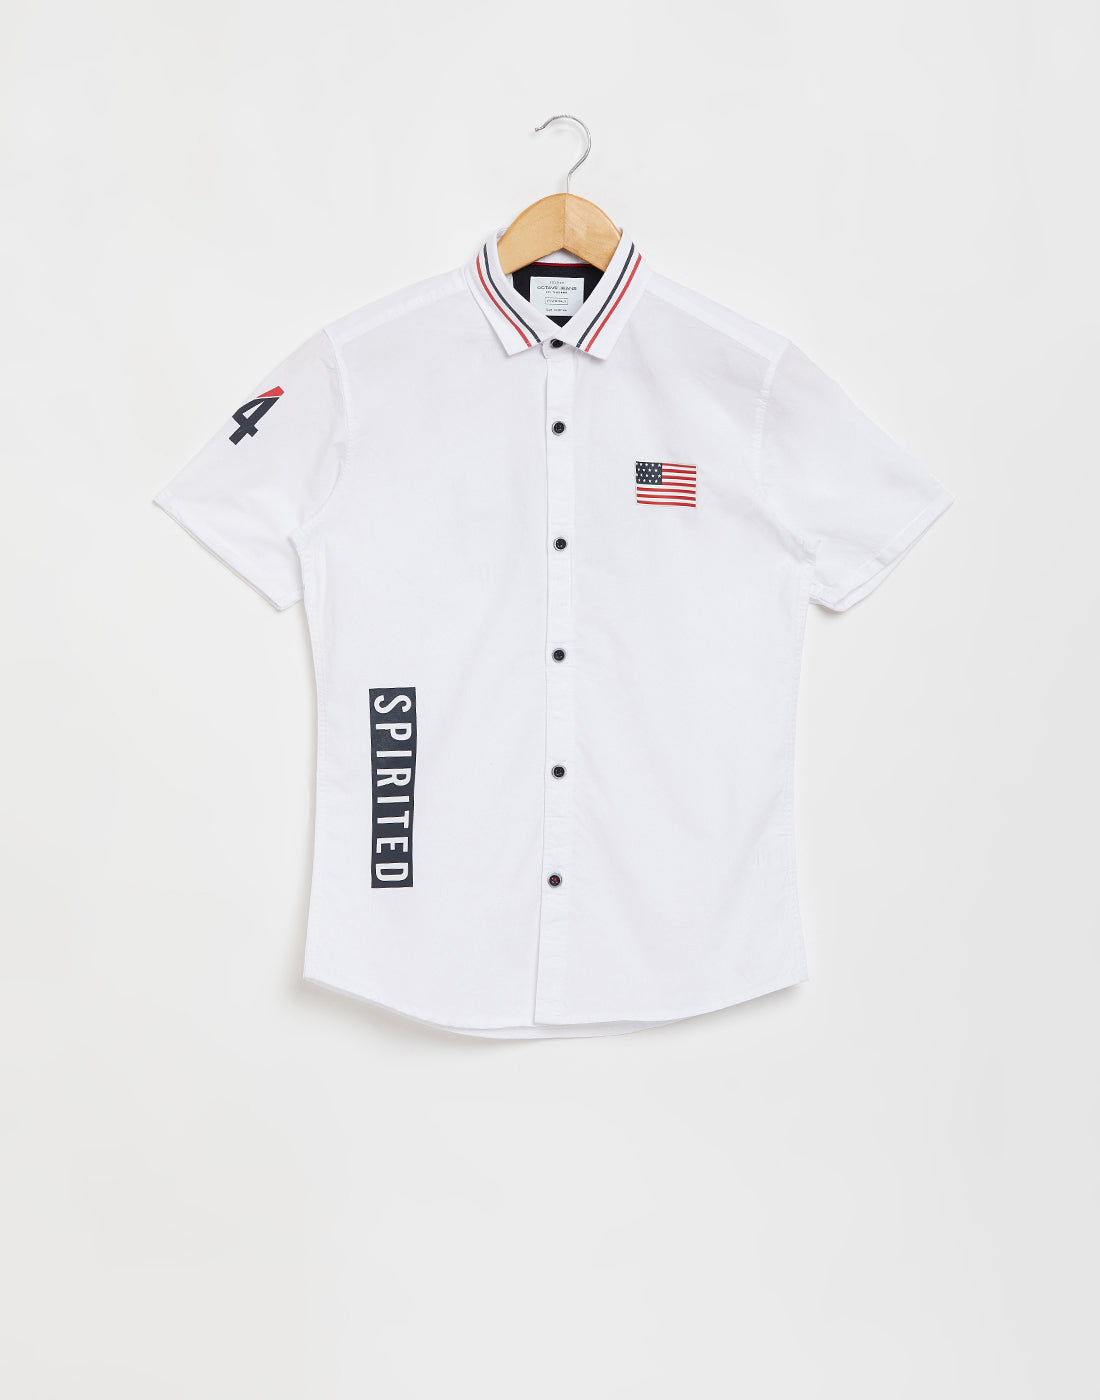 Octave Boys White Printed Casual Shirt